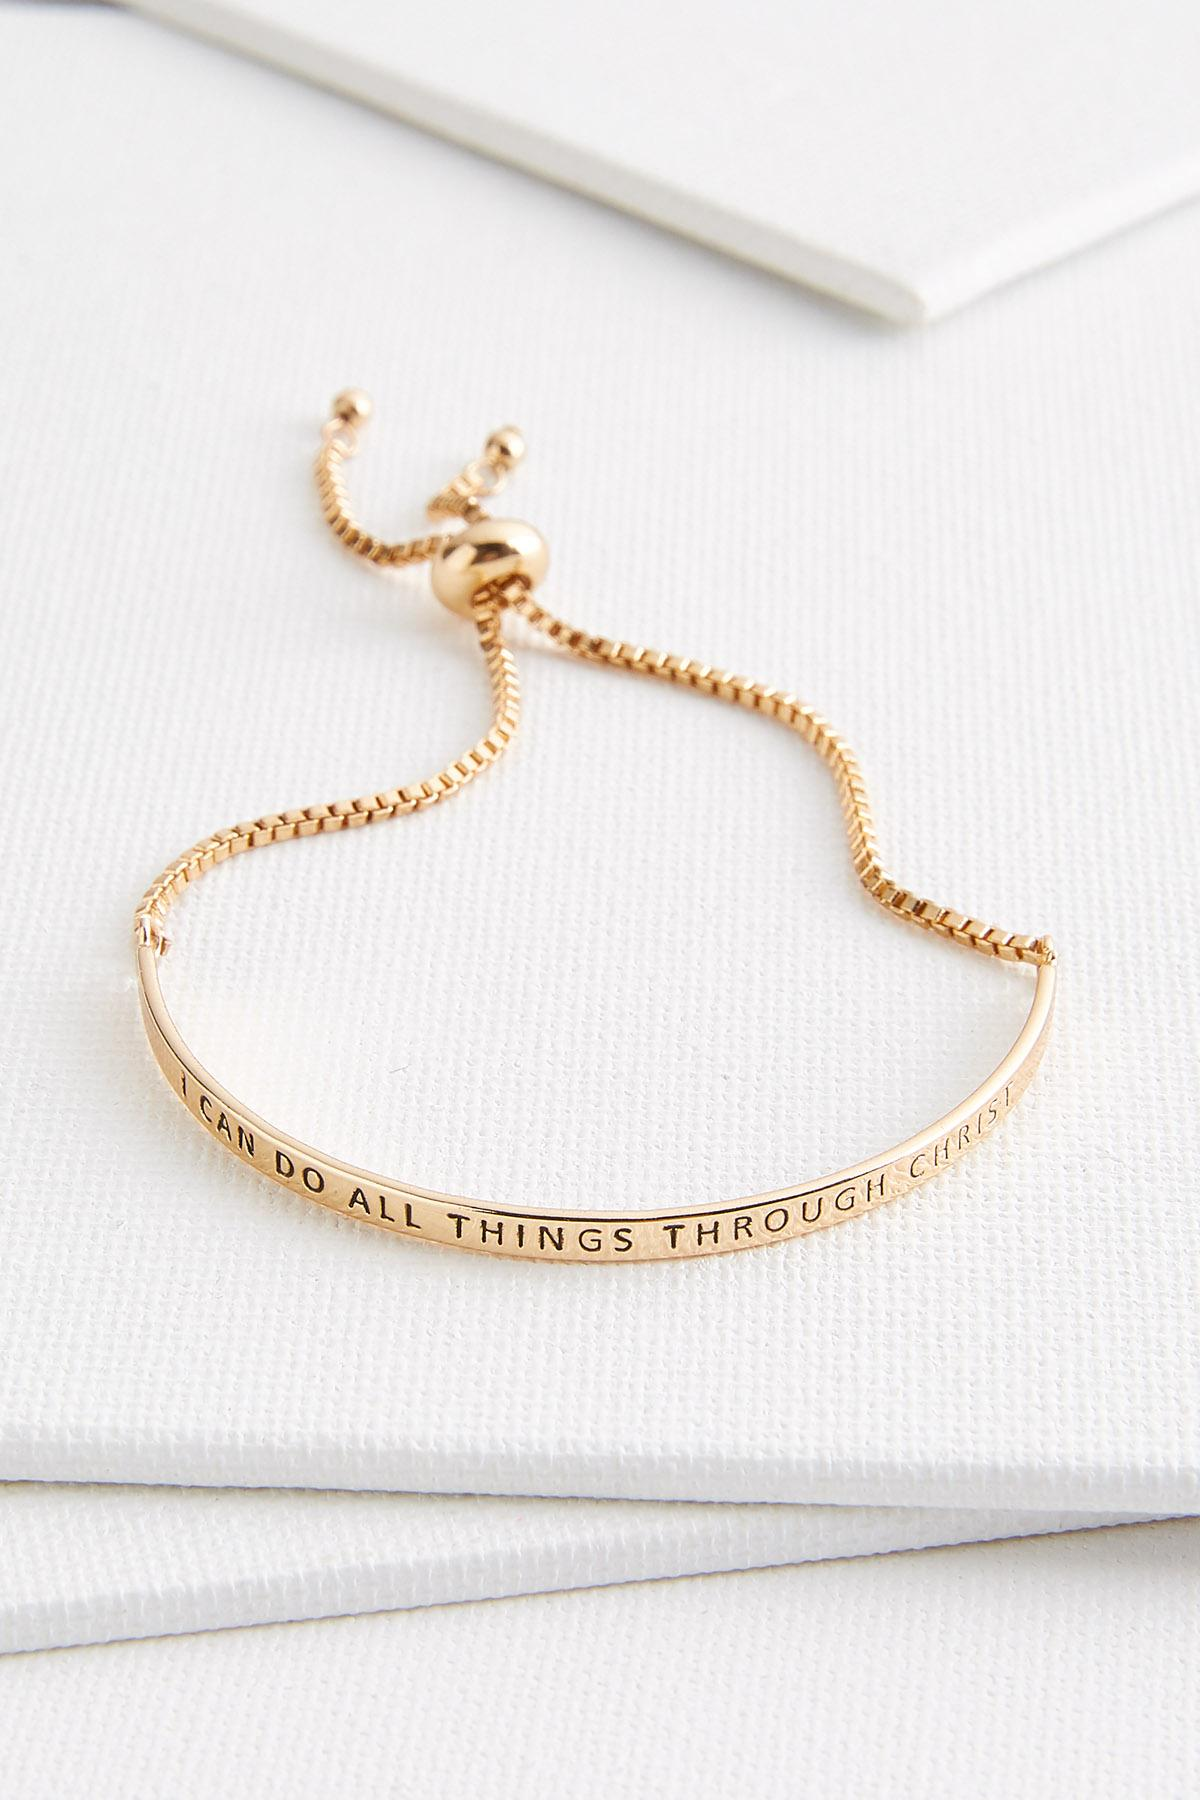 I Can Do All Things Bracelet